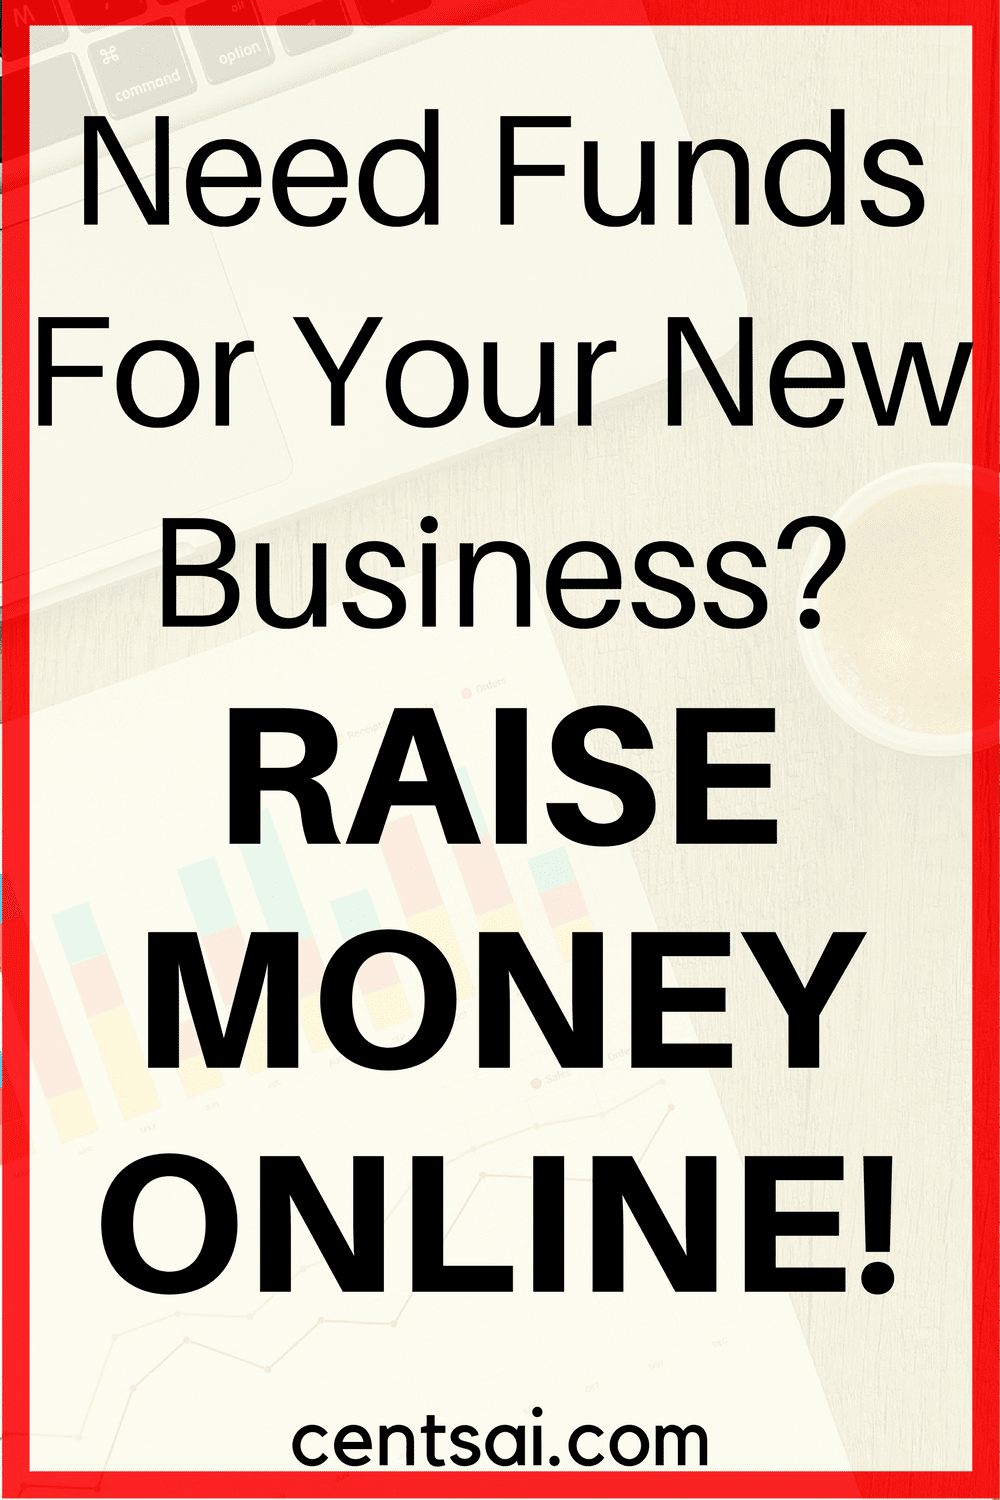 Need Funds For Your New Business? Raise Money Online!